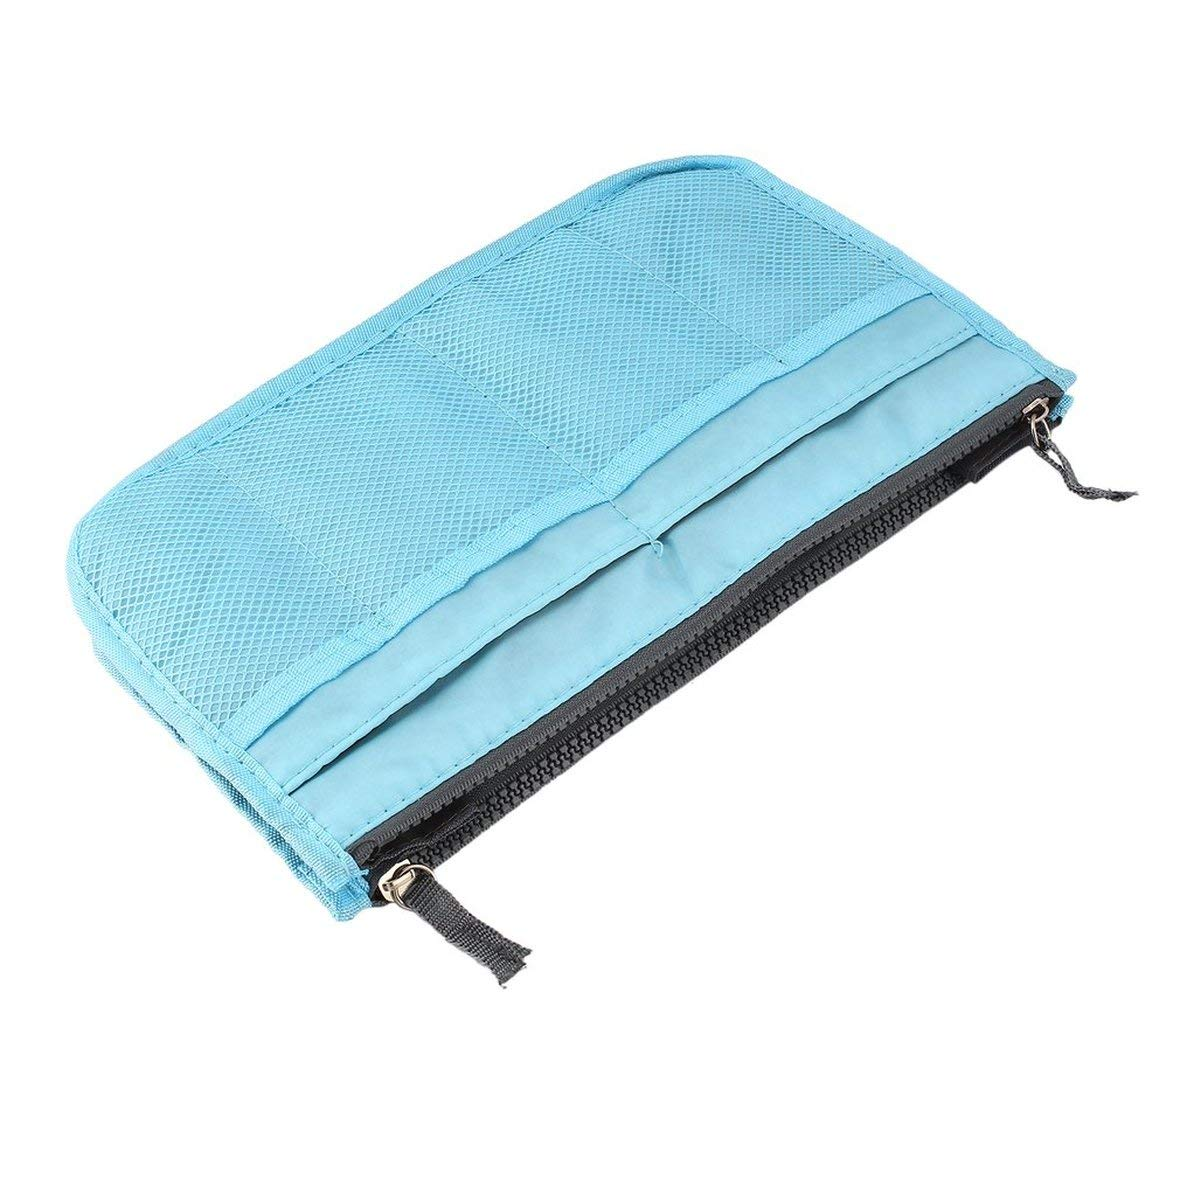 Heaviesk Trousse de maquillage Trousse de toilette Double Zipper Polyester Portable Travel Beauty Trousse de toilette Maquillage Trousse de toilette avec poignée